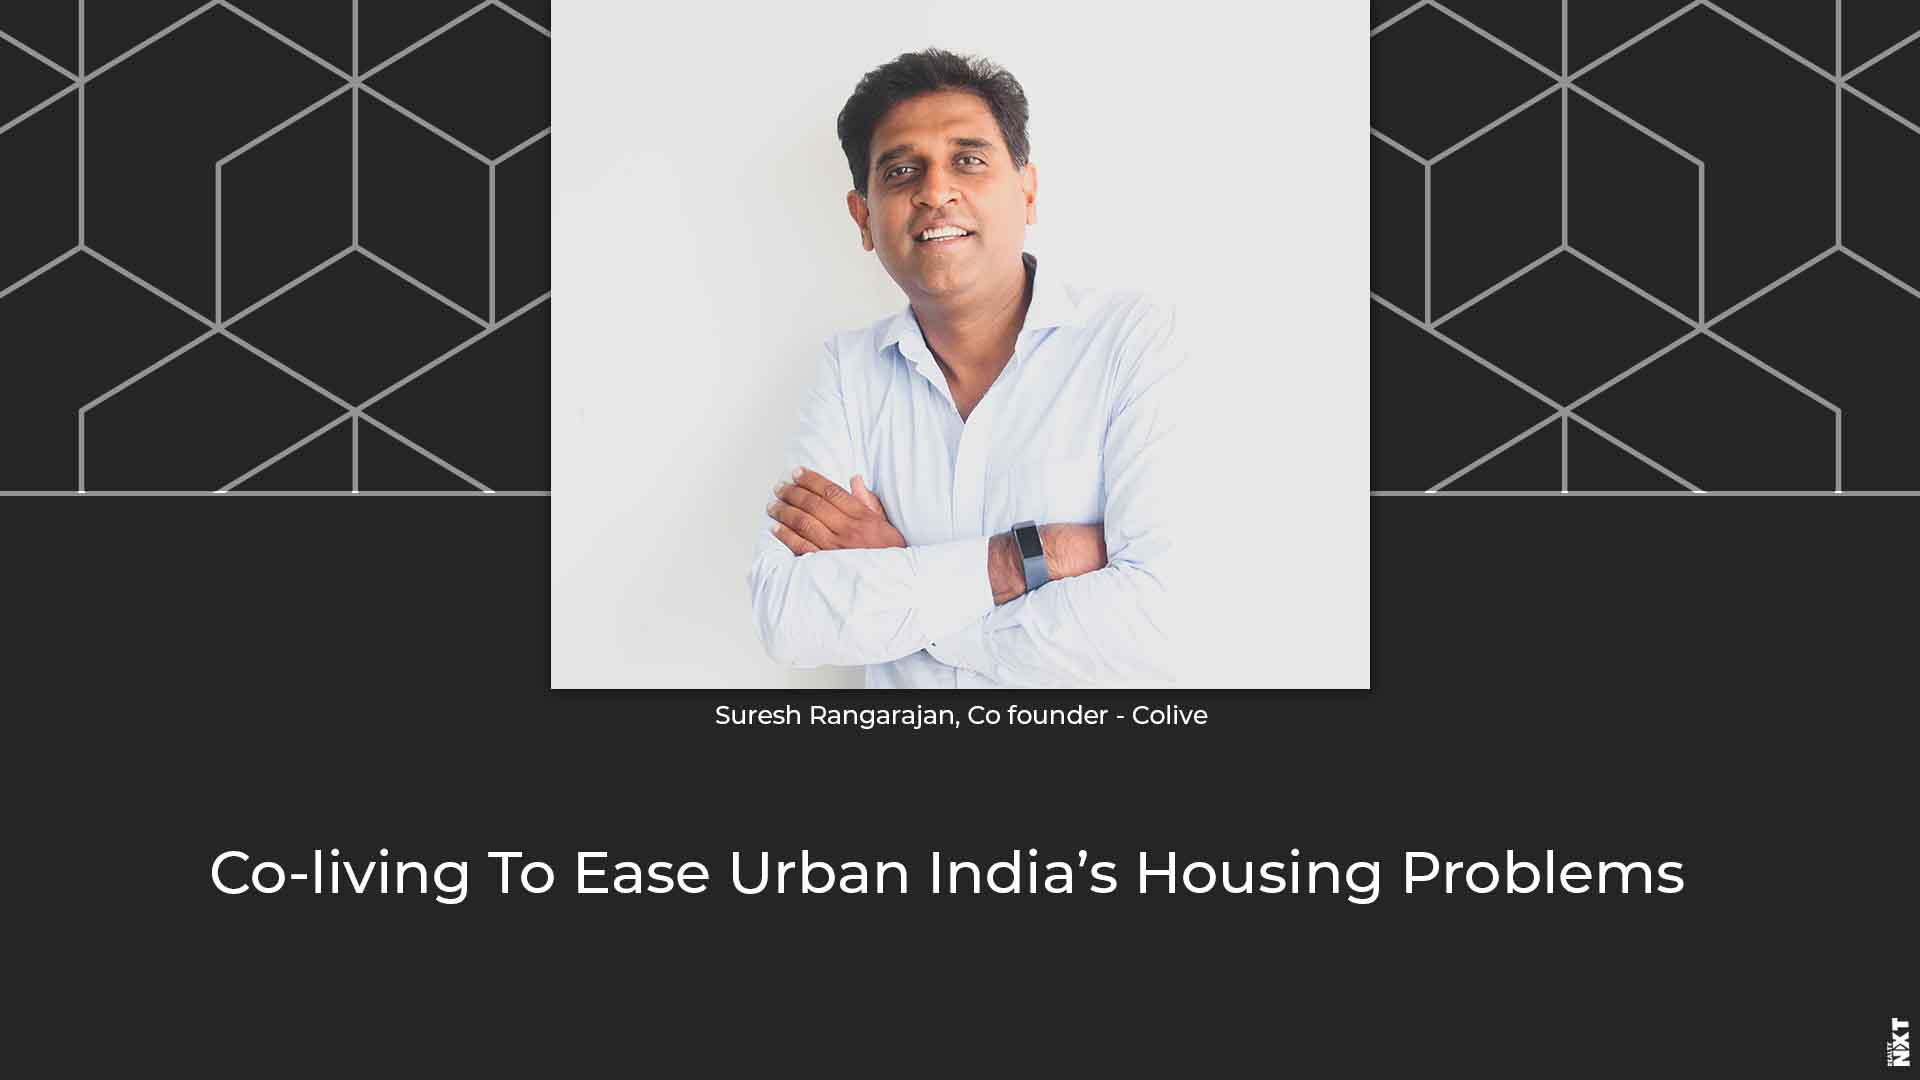 Co-living: Key To Solving India's Affordable Housing Crisis?